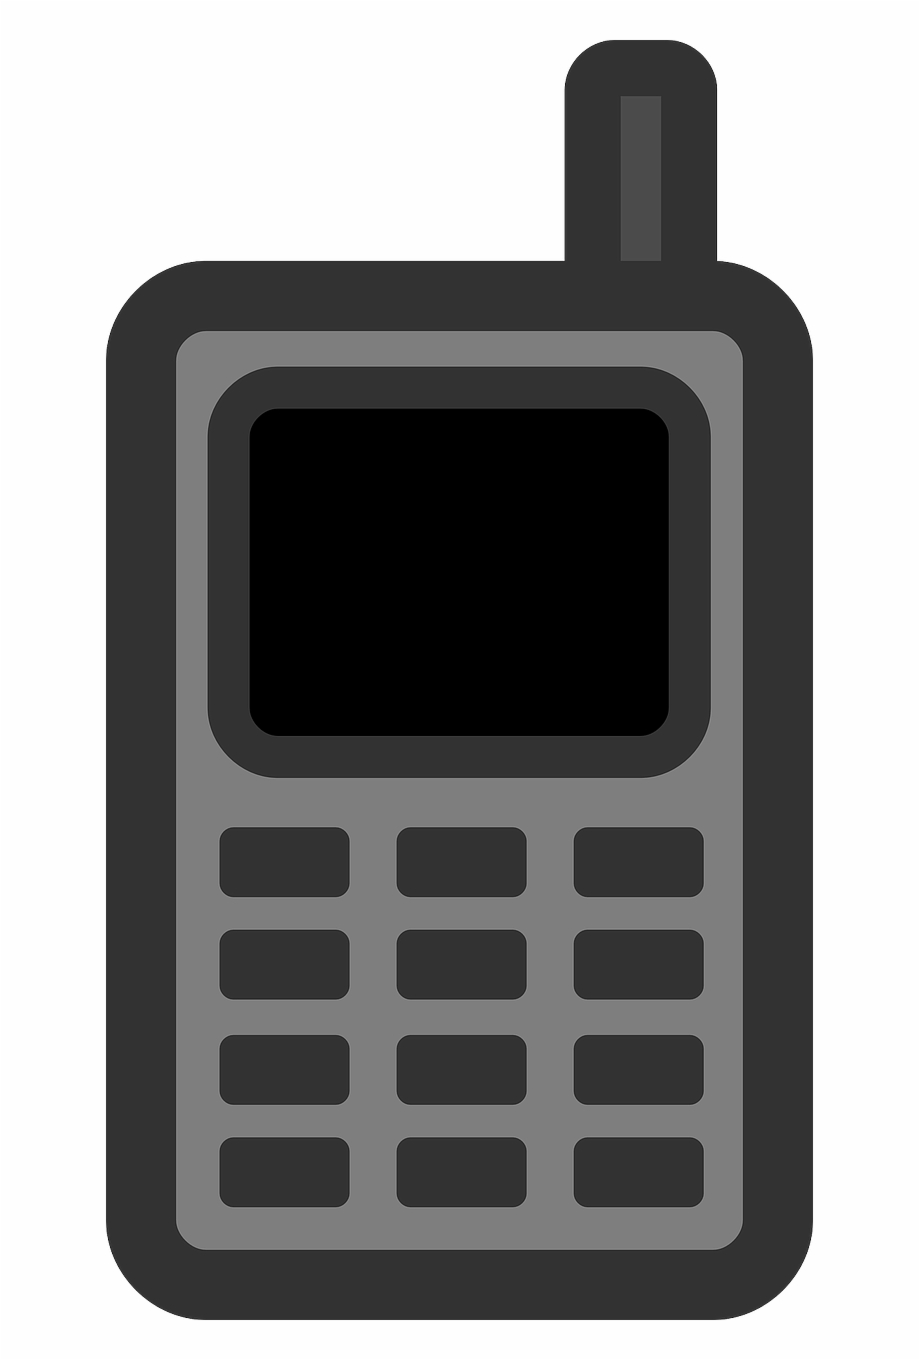 Old cell phone clipart jpg black and white stock Old Mobile Phone Clipart - Mobile Phone Clip Art, HD Png ... jpg black and white stock